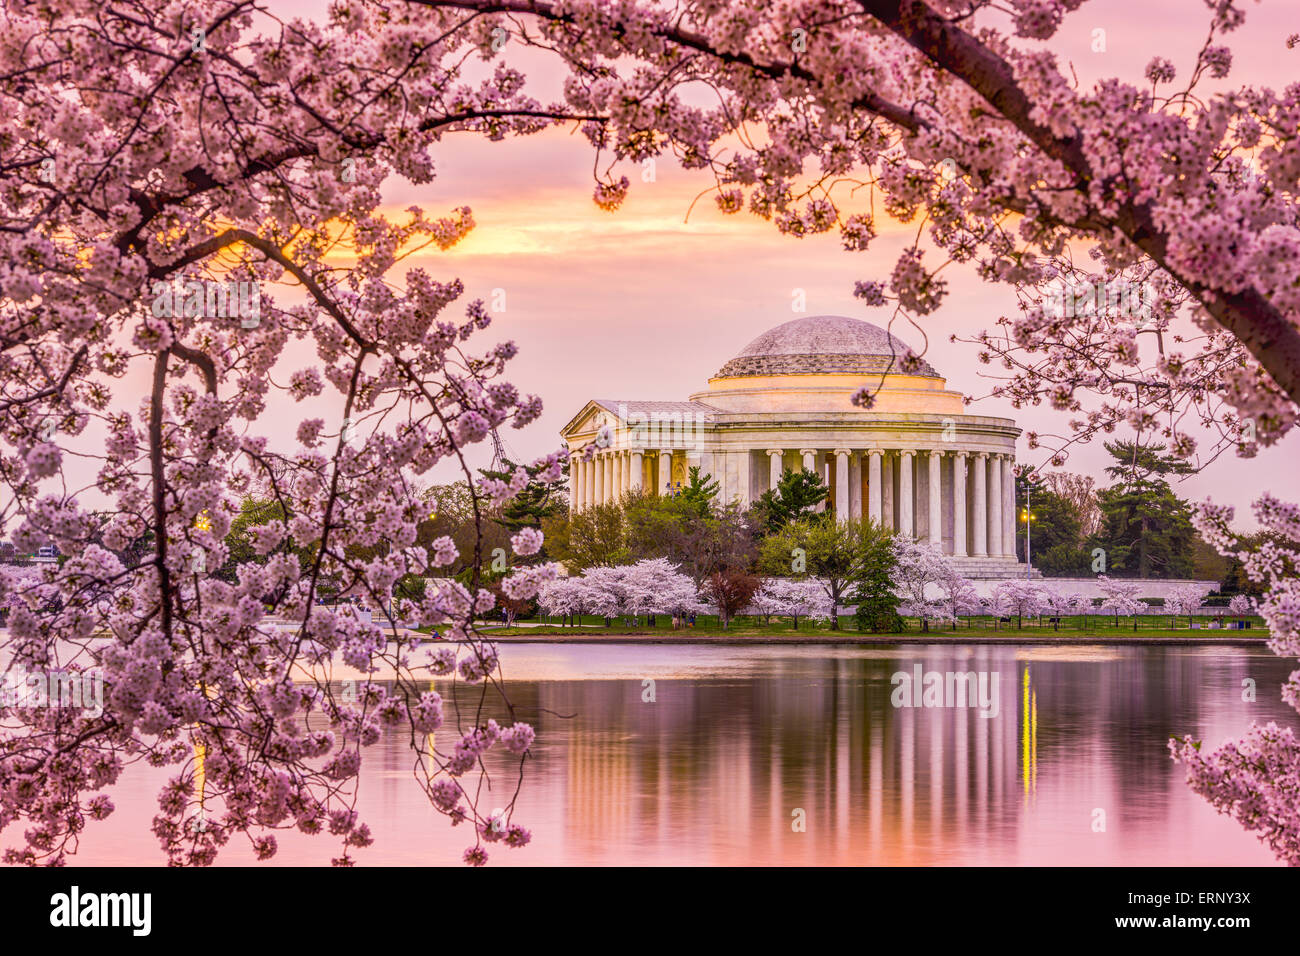 Washington, DC at the Tidal Basin and Jefferson Memorial during the spring cherry blossom season. - Stock Image